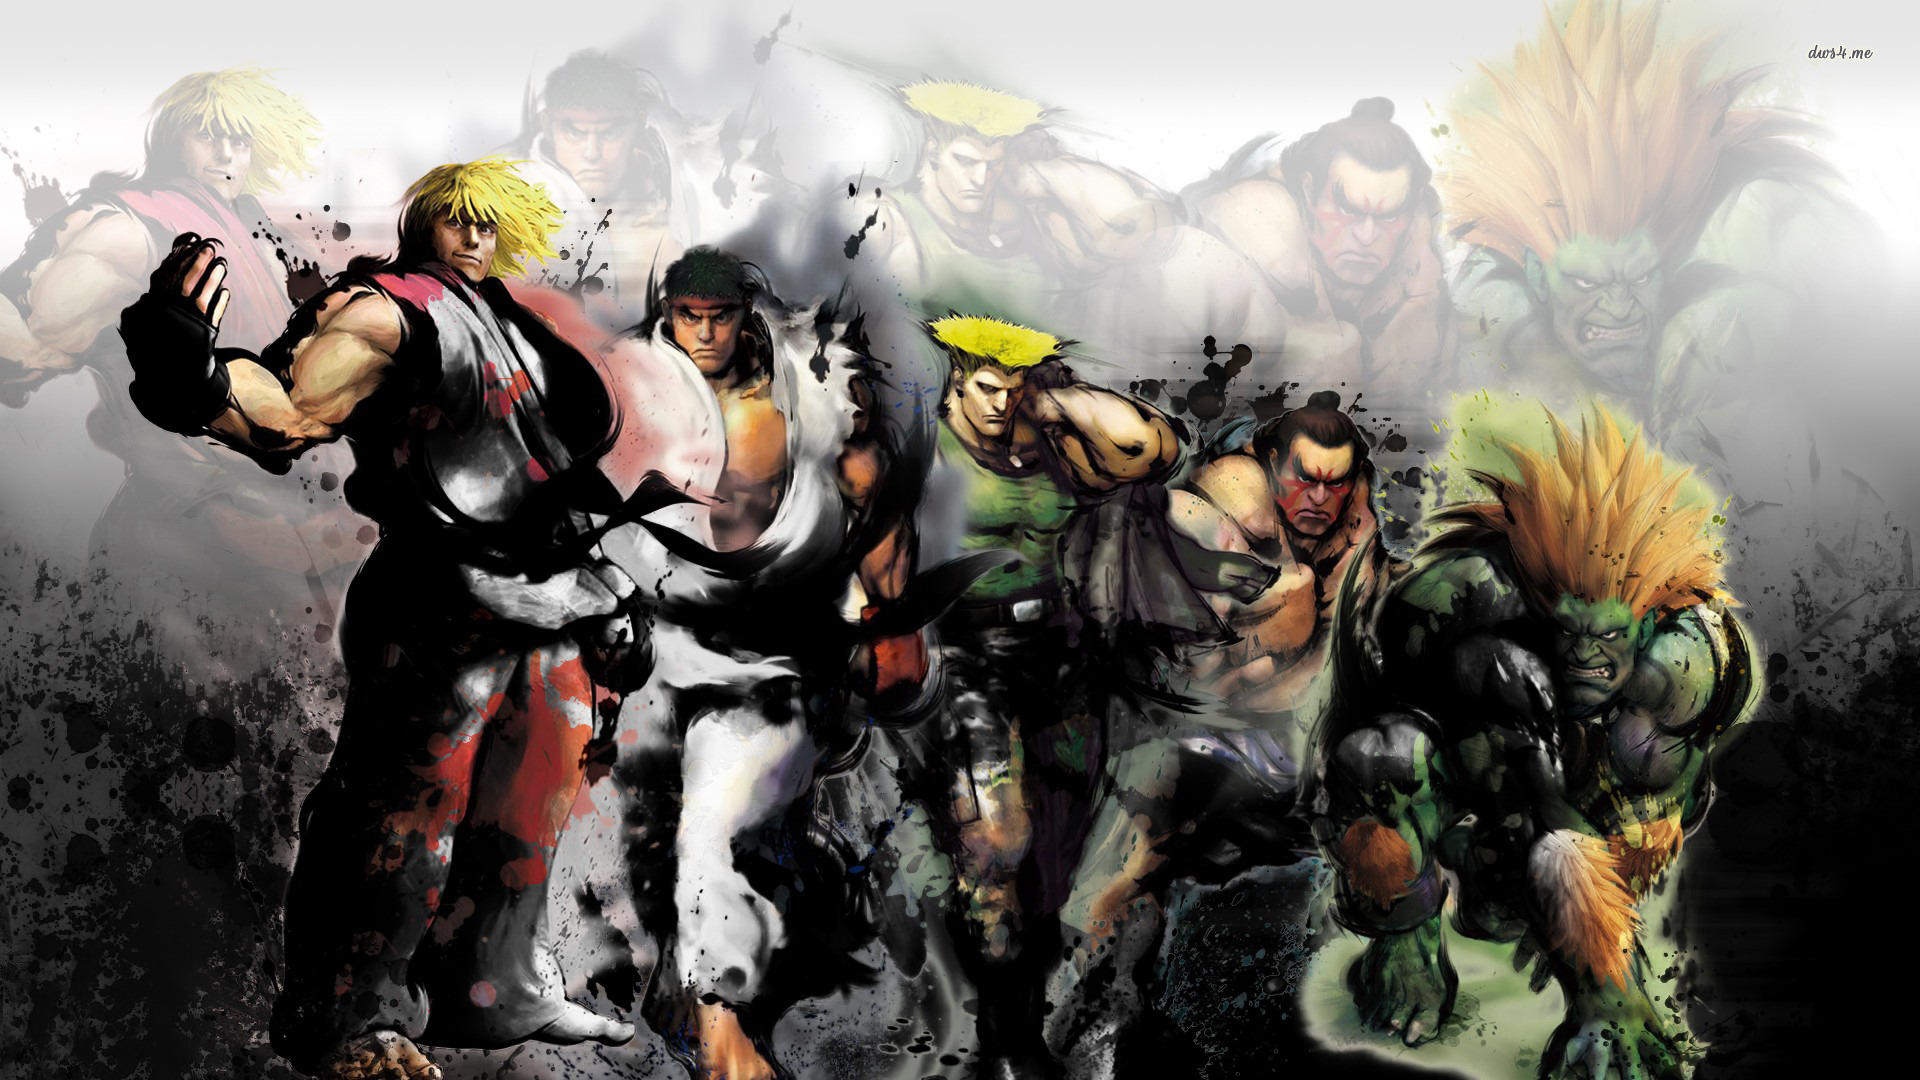 Free Download Fighter Iv Wallpaper 1680x1050 Street Fighter Iv